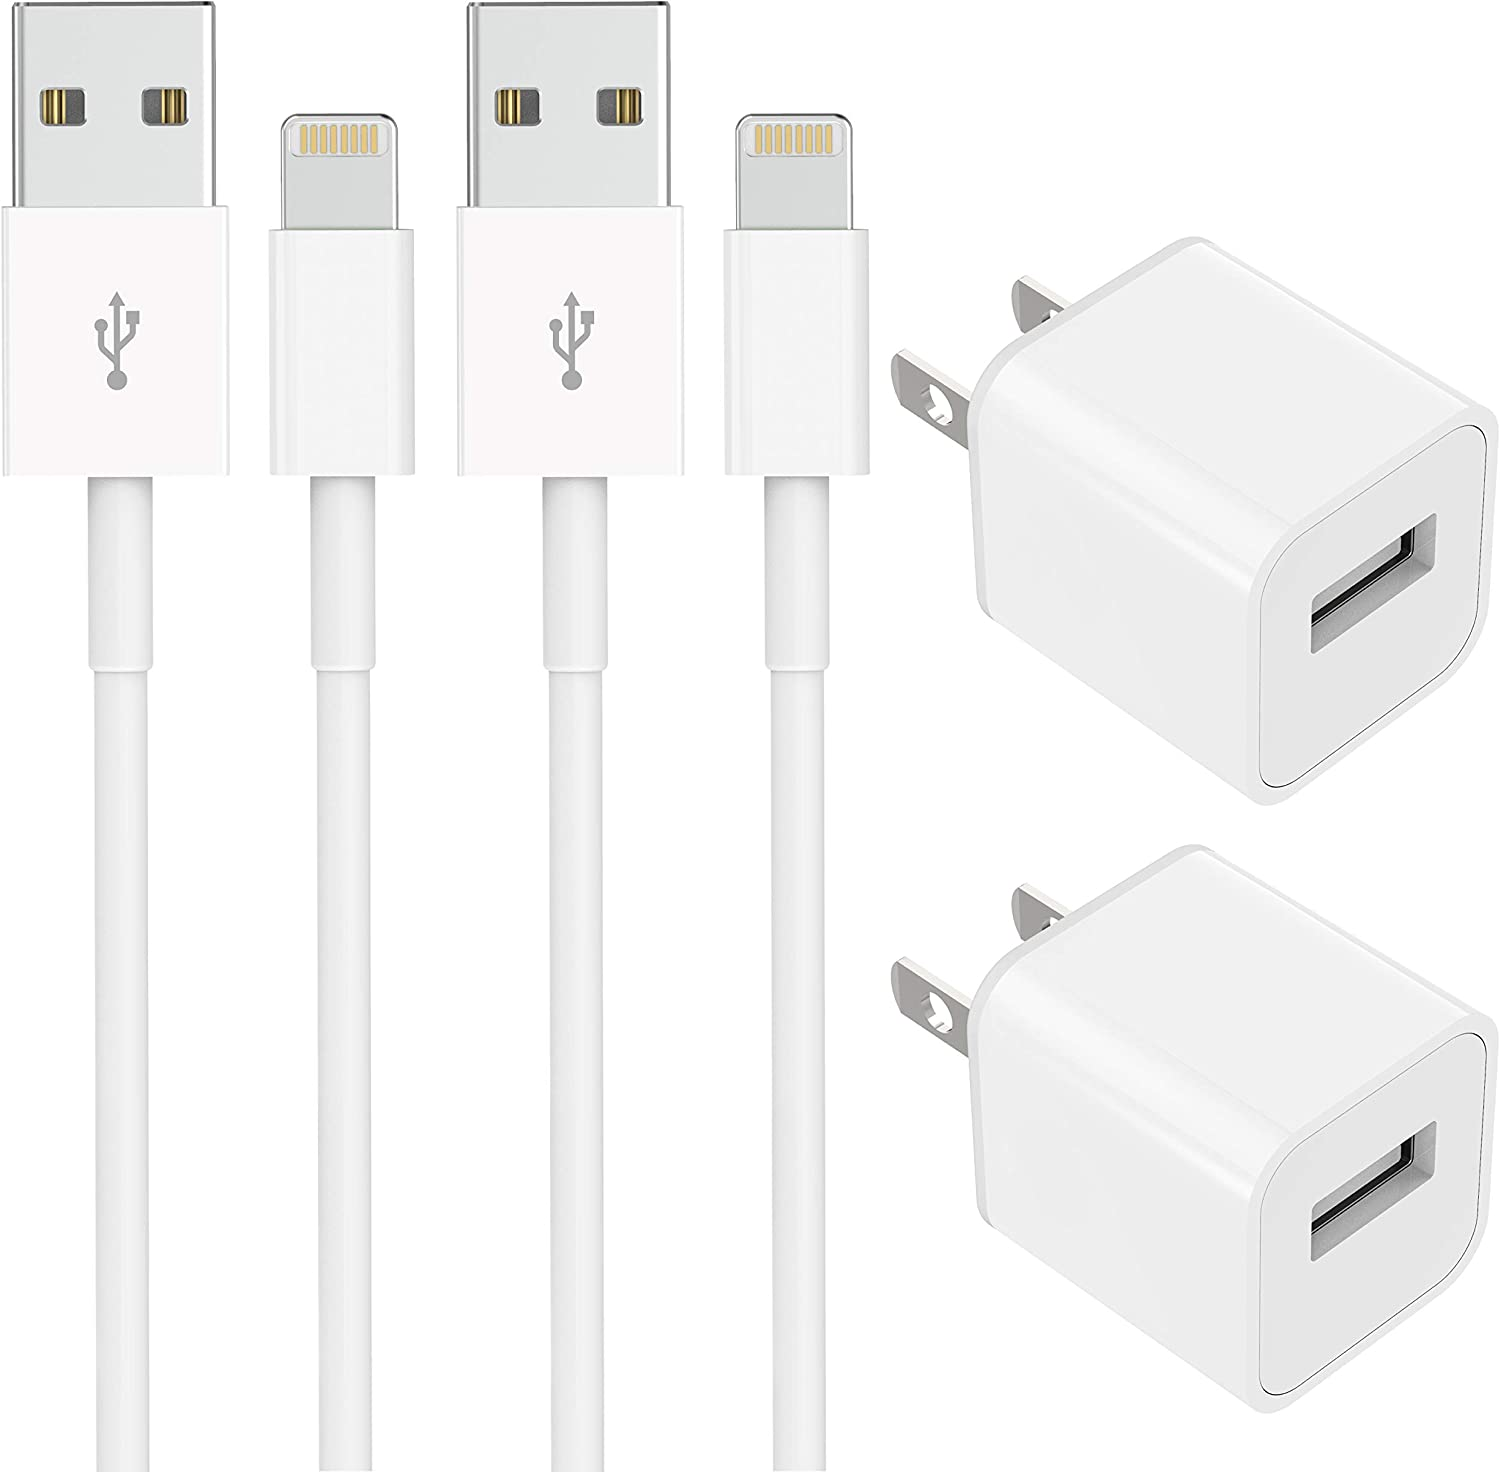 TT&C USB Wall Charger Adapter Block Fast Charging Certified Lightning Cable?5ft?Cord Data Sync Compatible with iPhone 11, Xs Max, XR, X, 8, 8Plus 7, 7Plus 6, 6S , 6S Plus, SE, 5S, 5C, iPad Mini, iPod